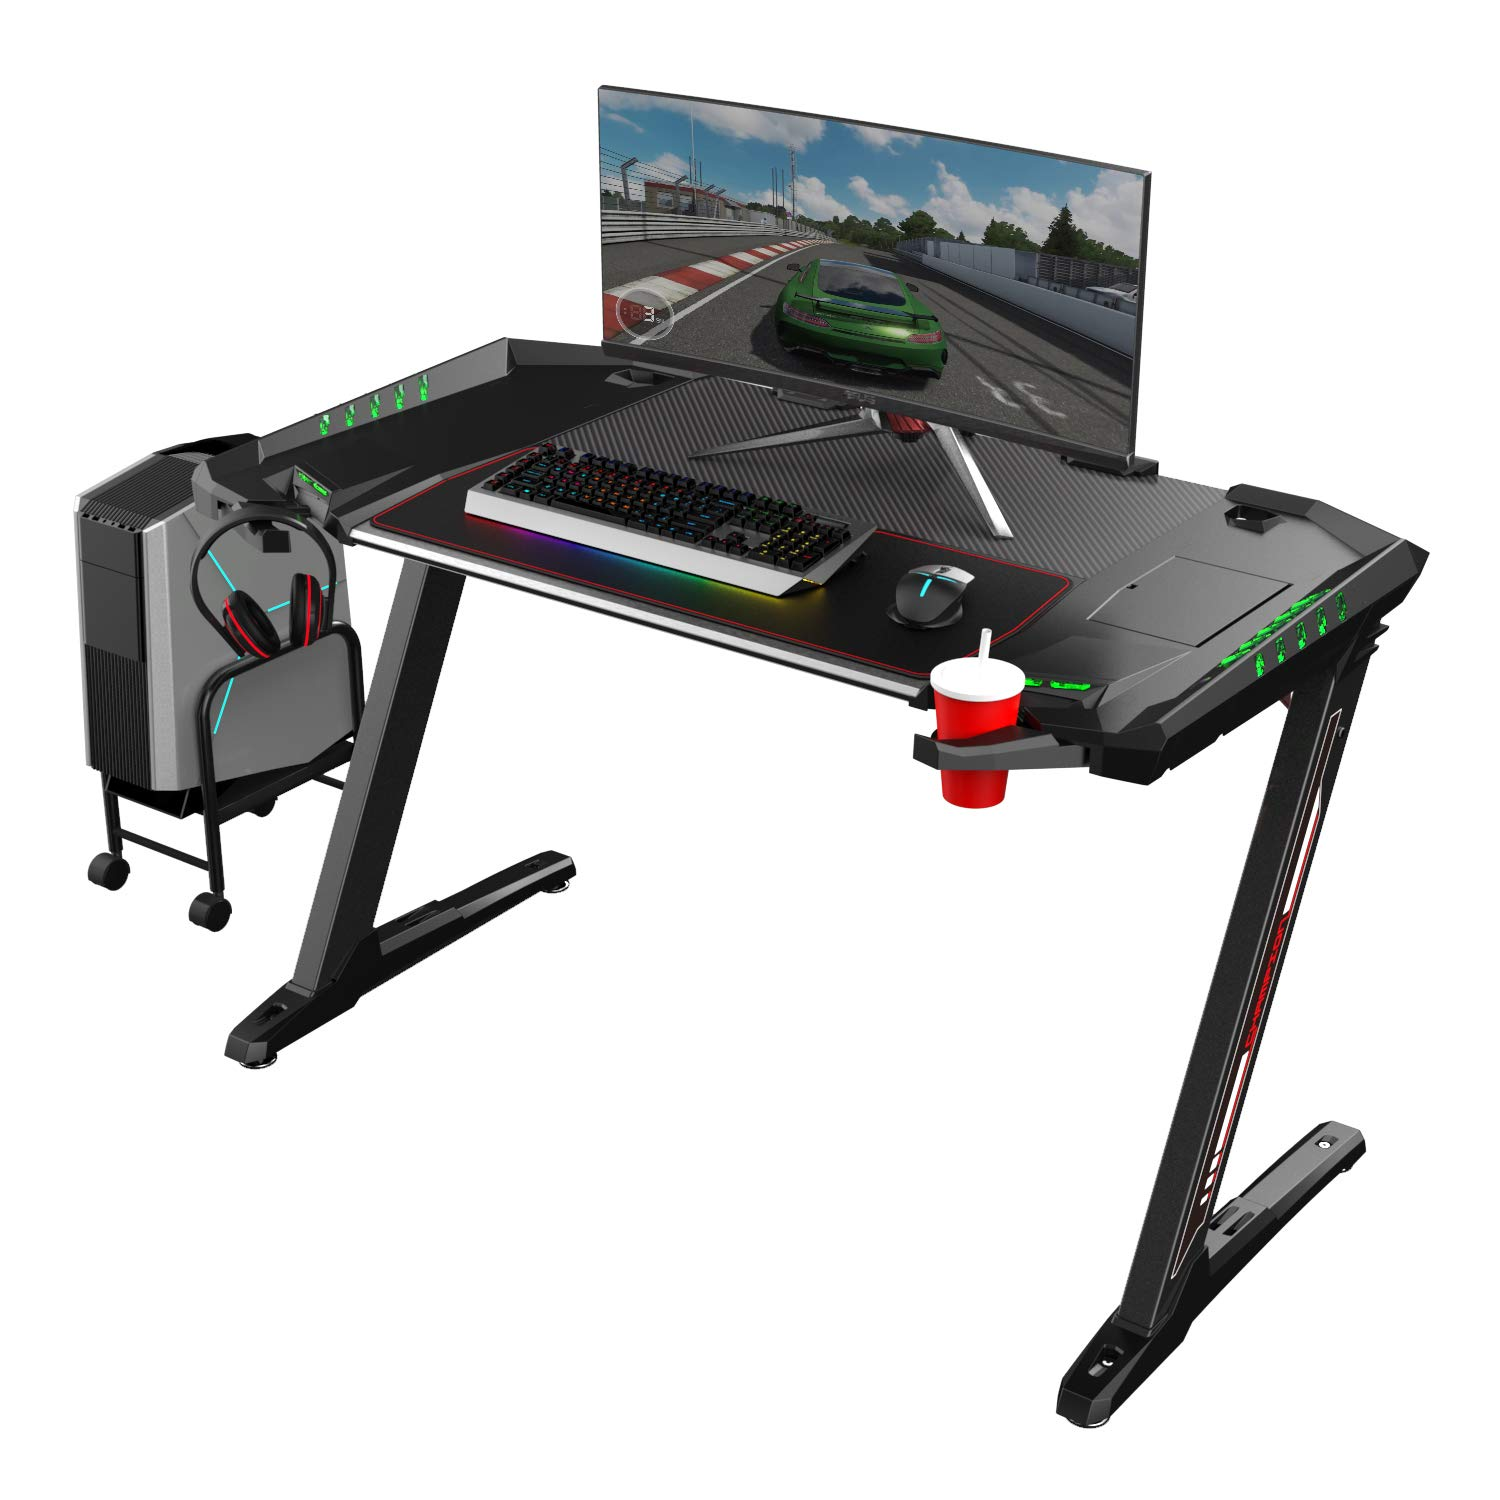 EUREKA ERGONOMIC Z2 Gaming Desk 50.6'' Z Shaped Office PC Computer Gaming Table with Retractable Cup Holder Headset Hook RGB Light for Men Boyfriend Female Gift by Eureka Ergonomic